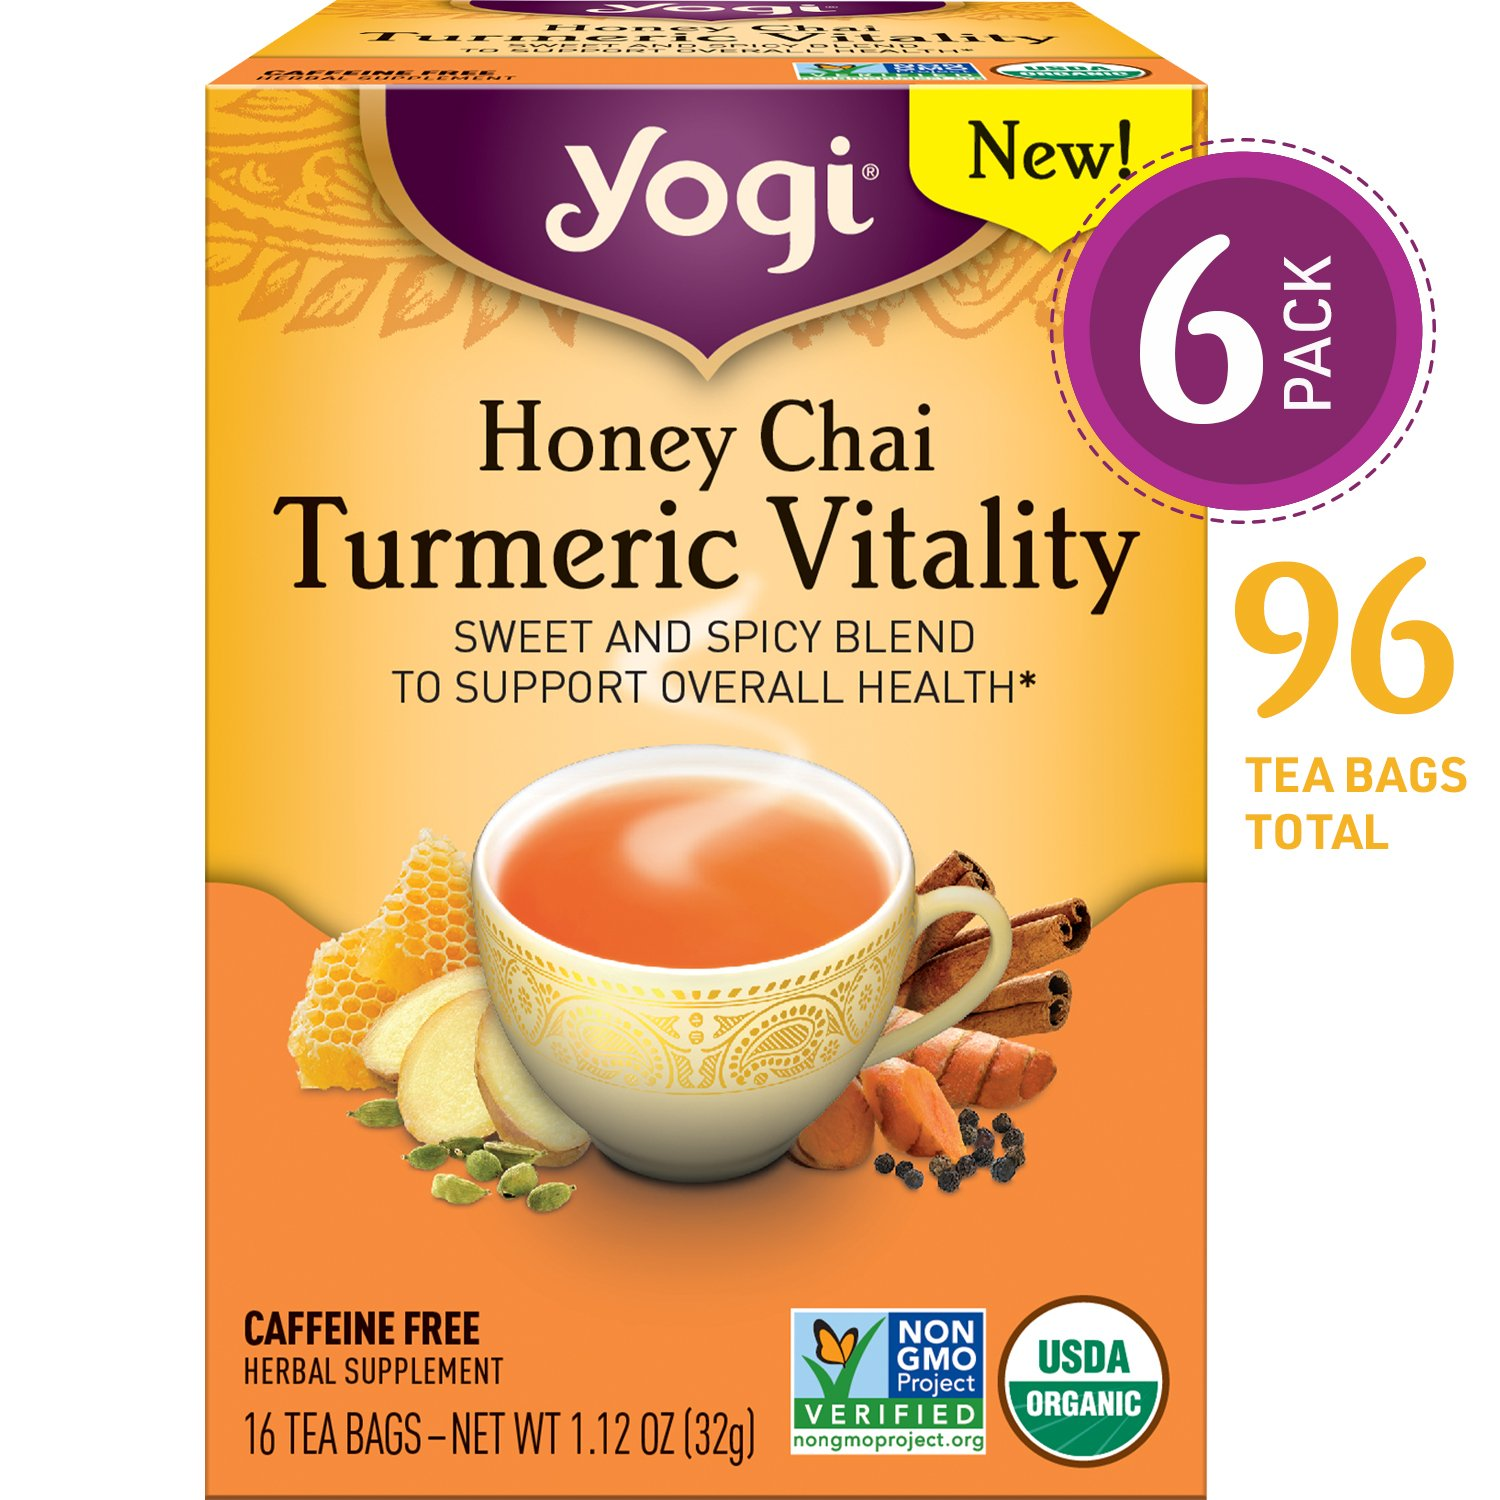 Yogi Tea - Honey Chai Turmeric Vitality - Sweet and Spicy Blend - 6 Pack, 96 Tea Bags Total